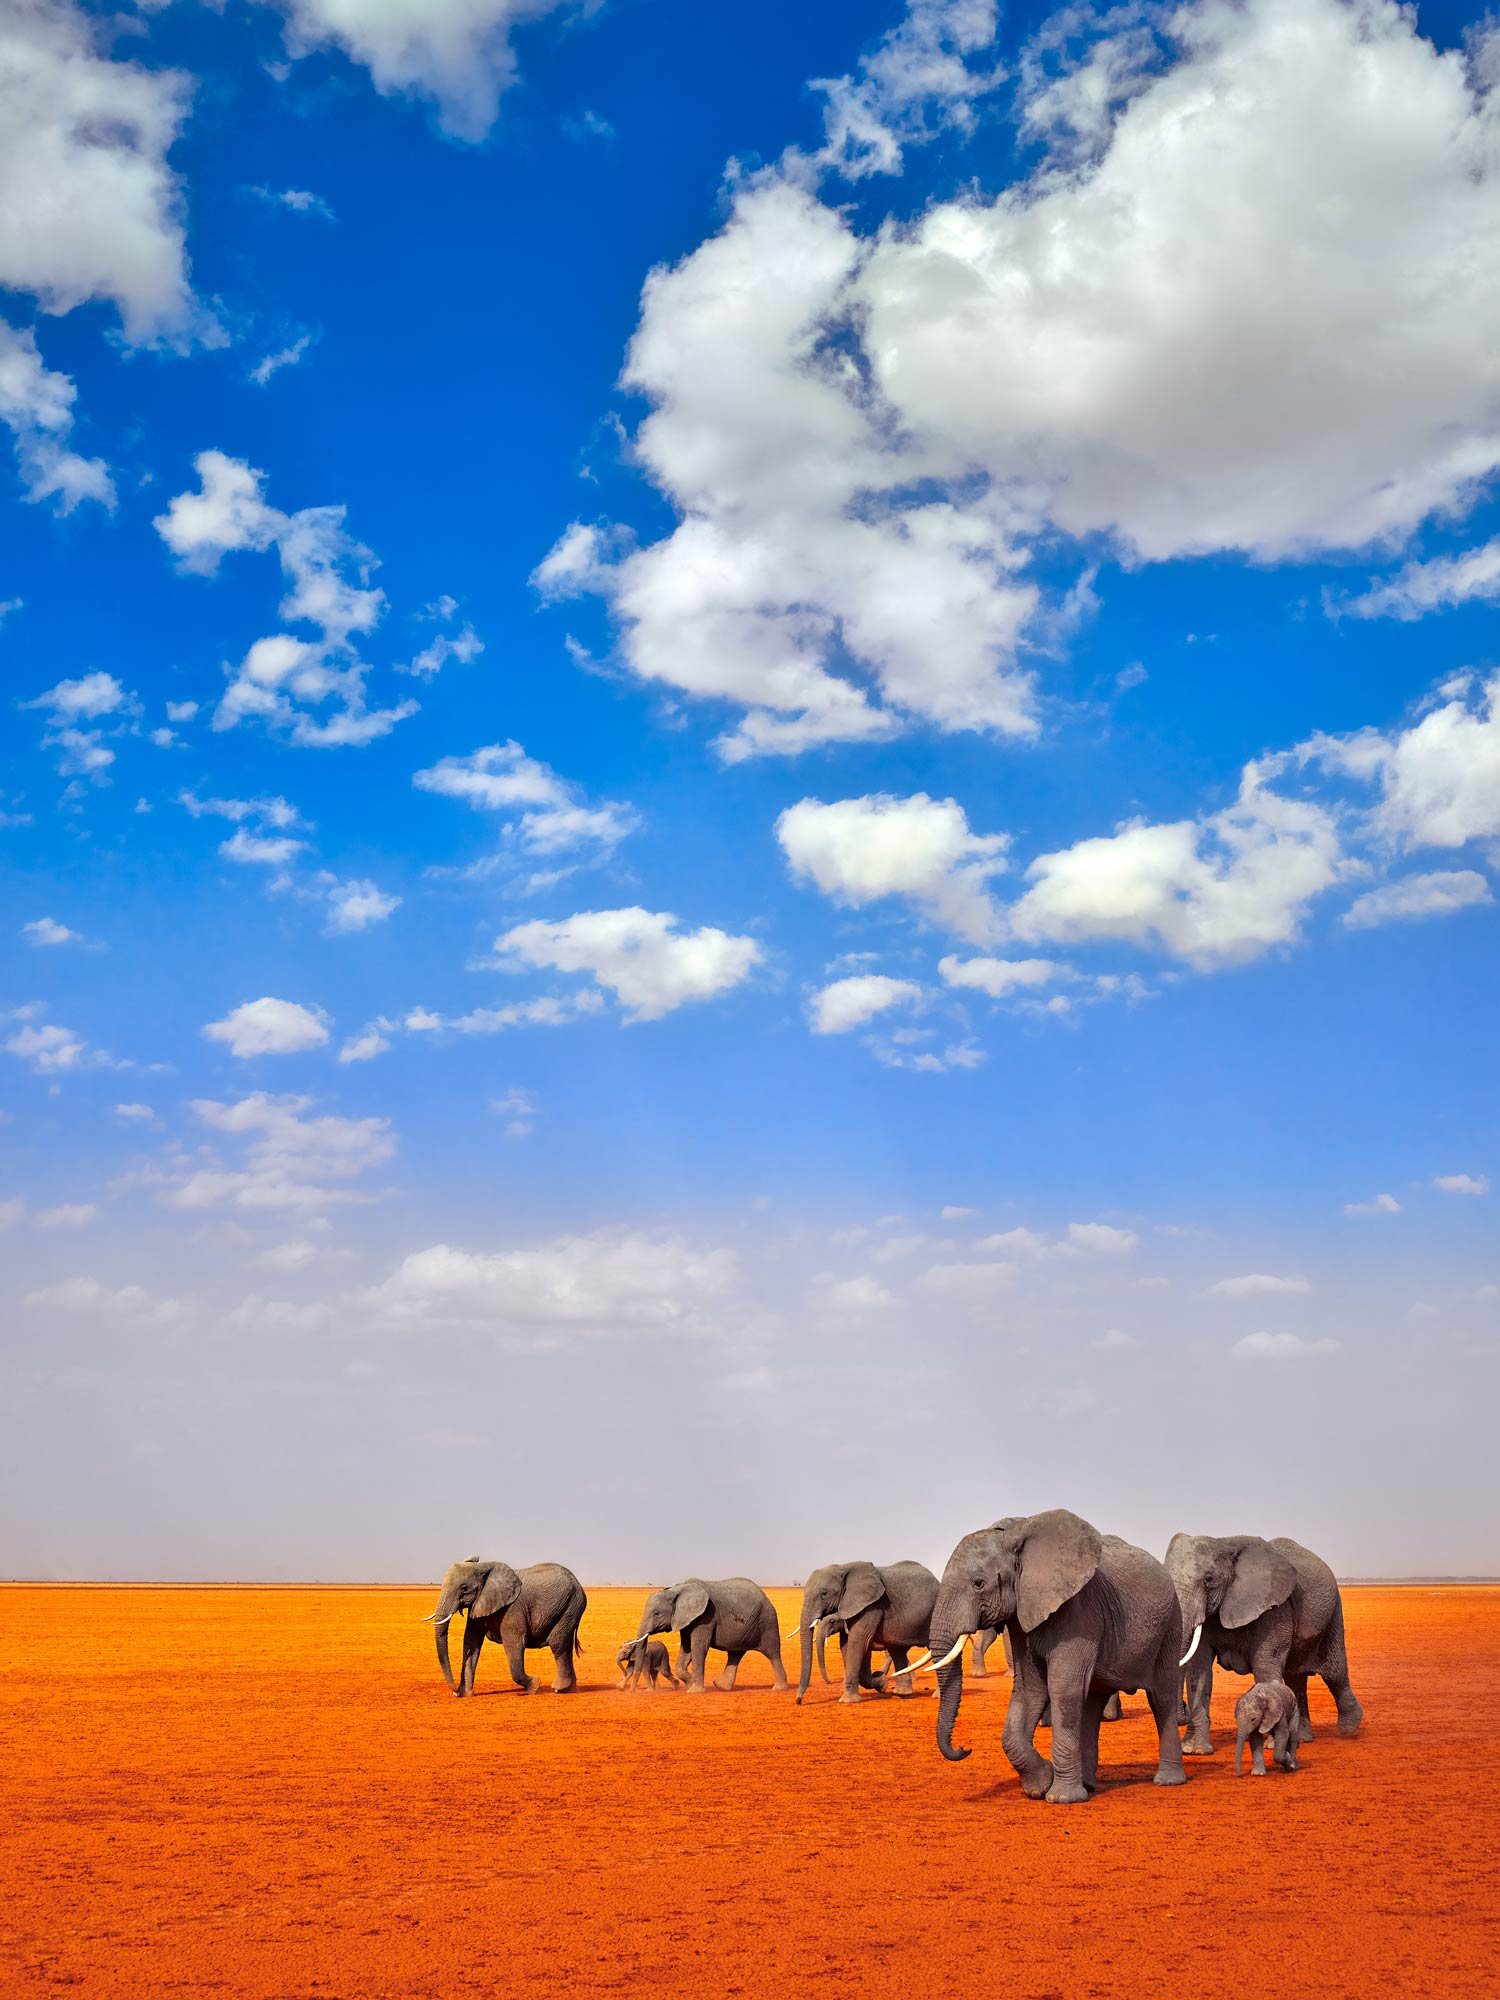 a family of elephants walking across red earth below a bright blue sky